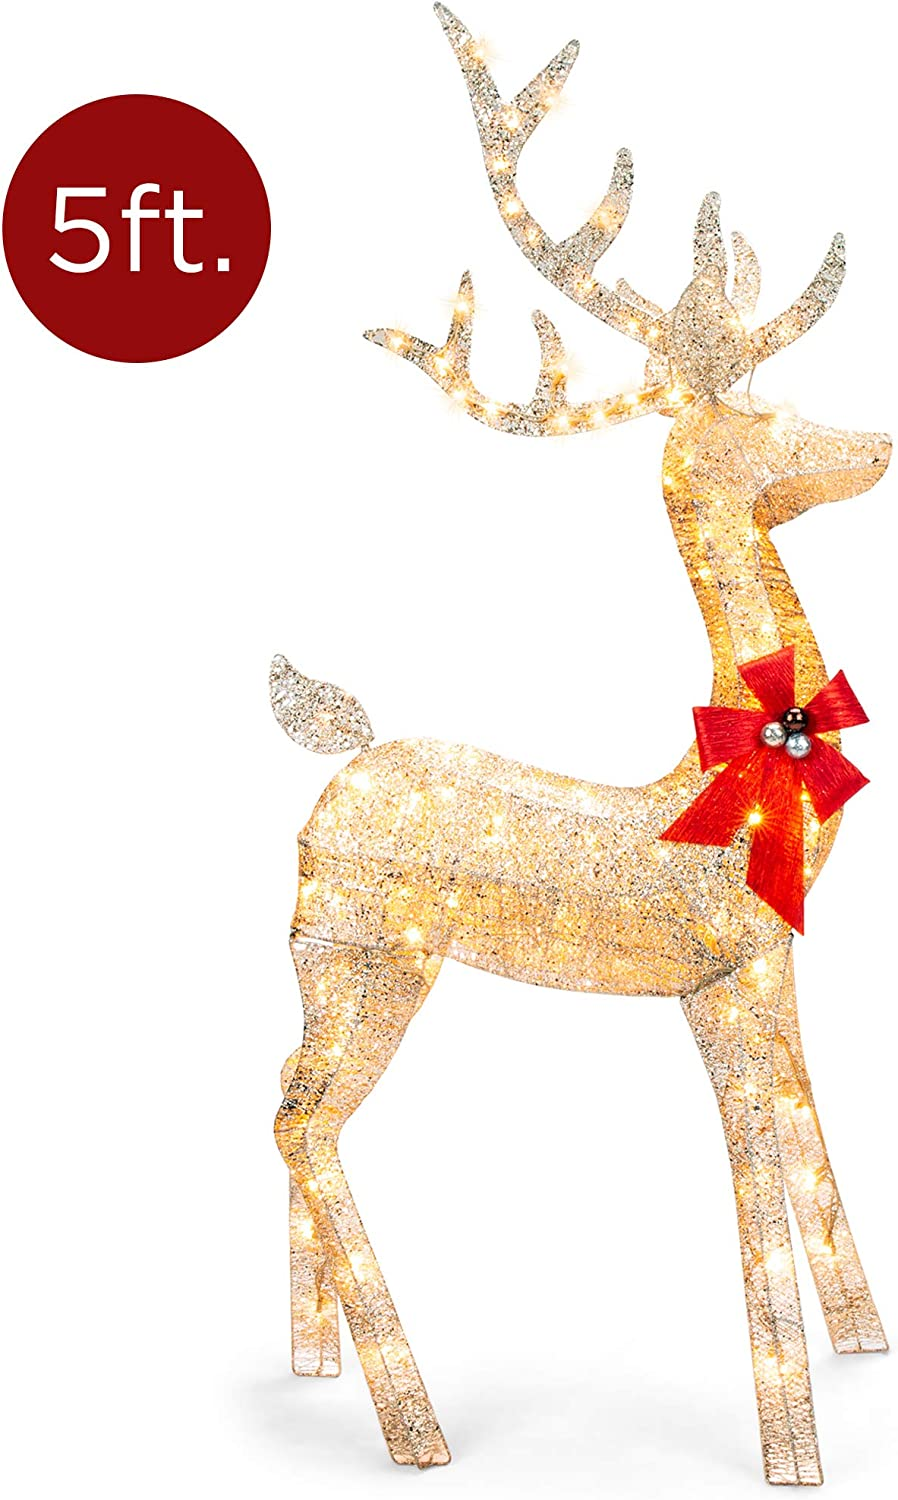 Best Choice Products 5ft 3D Pre-Lit Gold Glitter Christmas Reindeer Buck Yard Decoration w/ 150 Lights, Stakes, Zip Ties